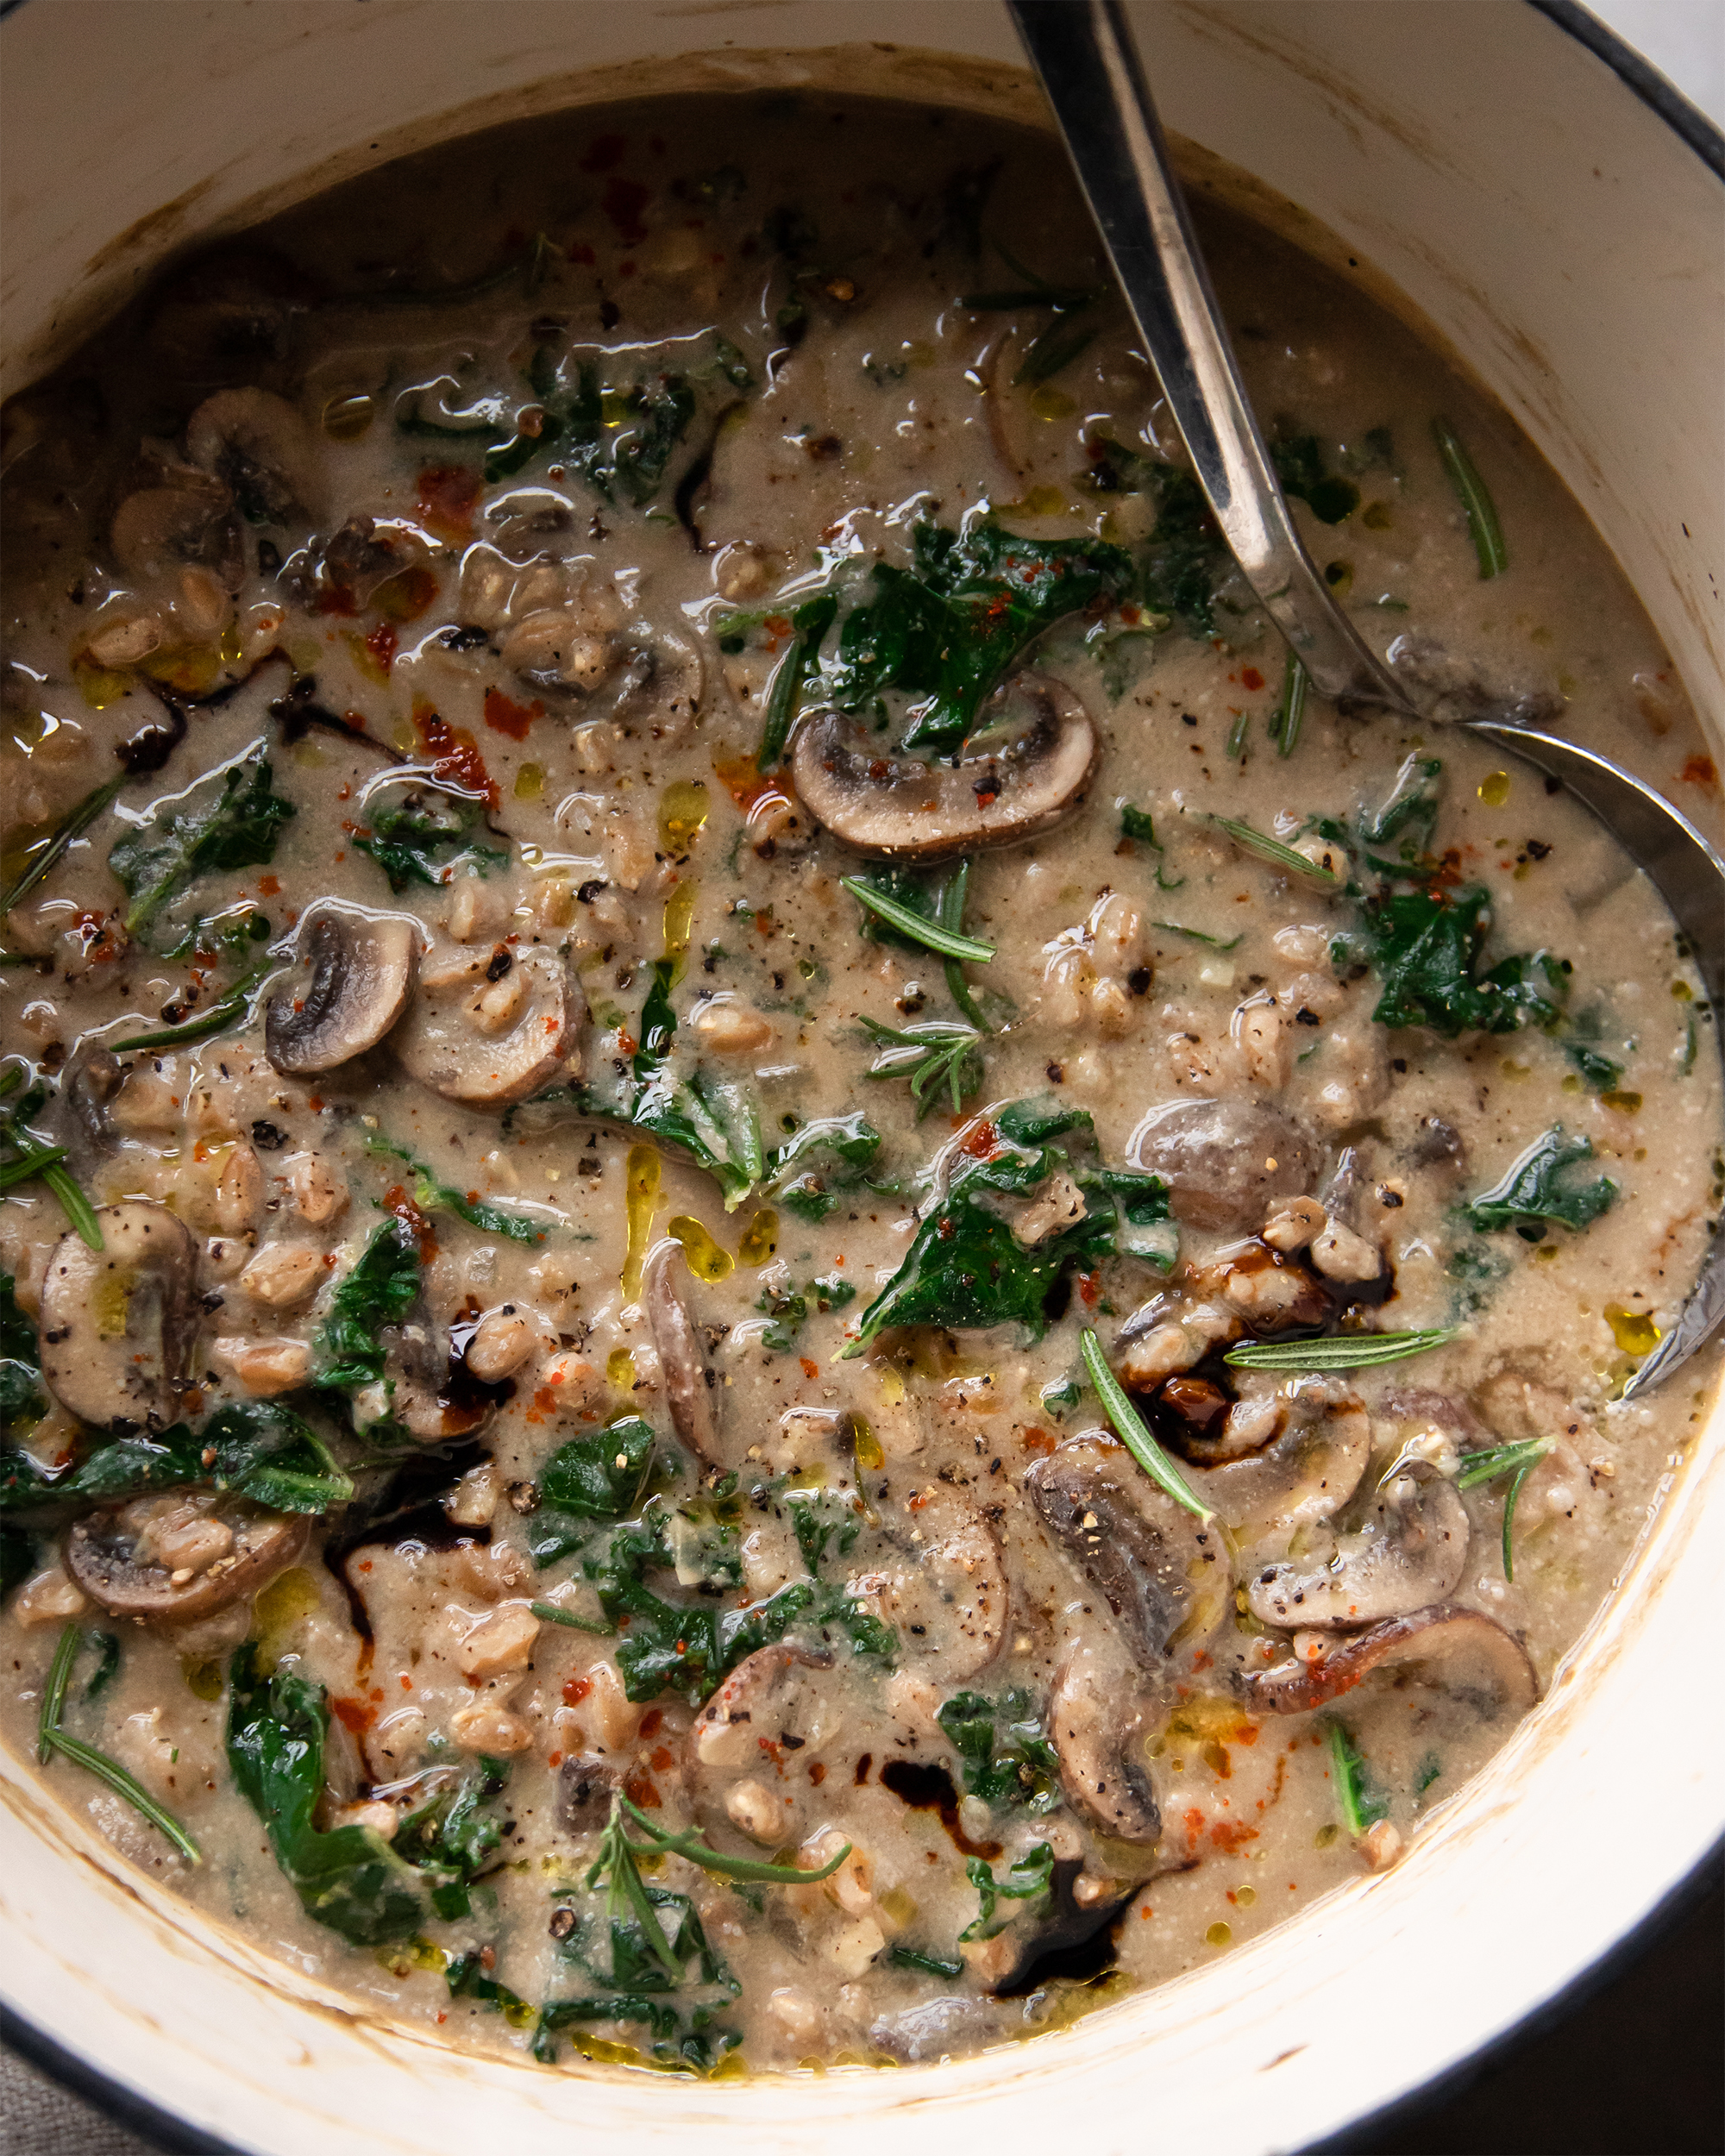 AN up close, overhead shot of creamy vegan mushroom stew with kale and farro. The soup is a golden beige colour and is inside a white Dutch oven pot.